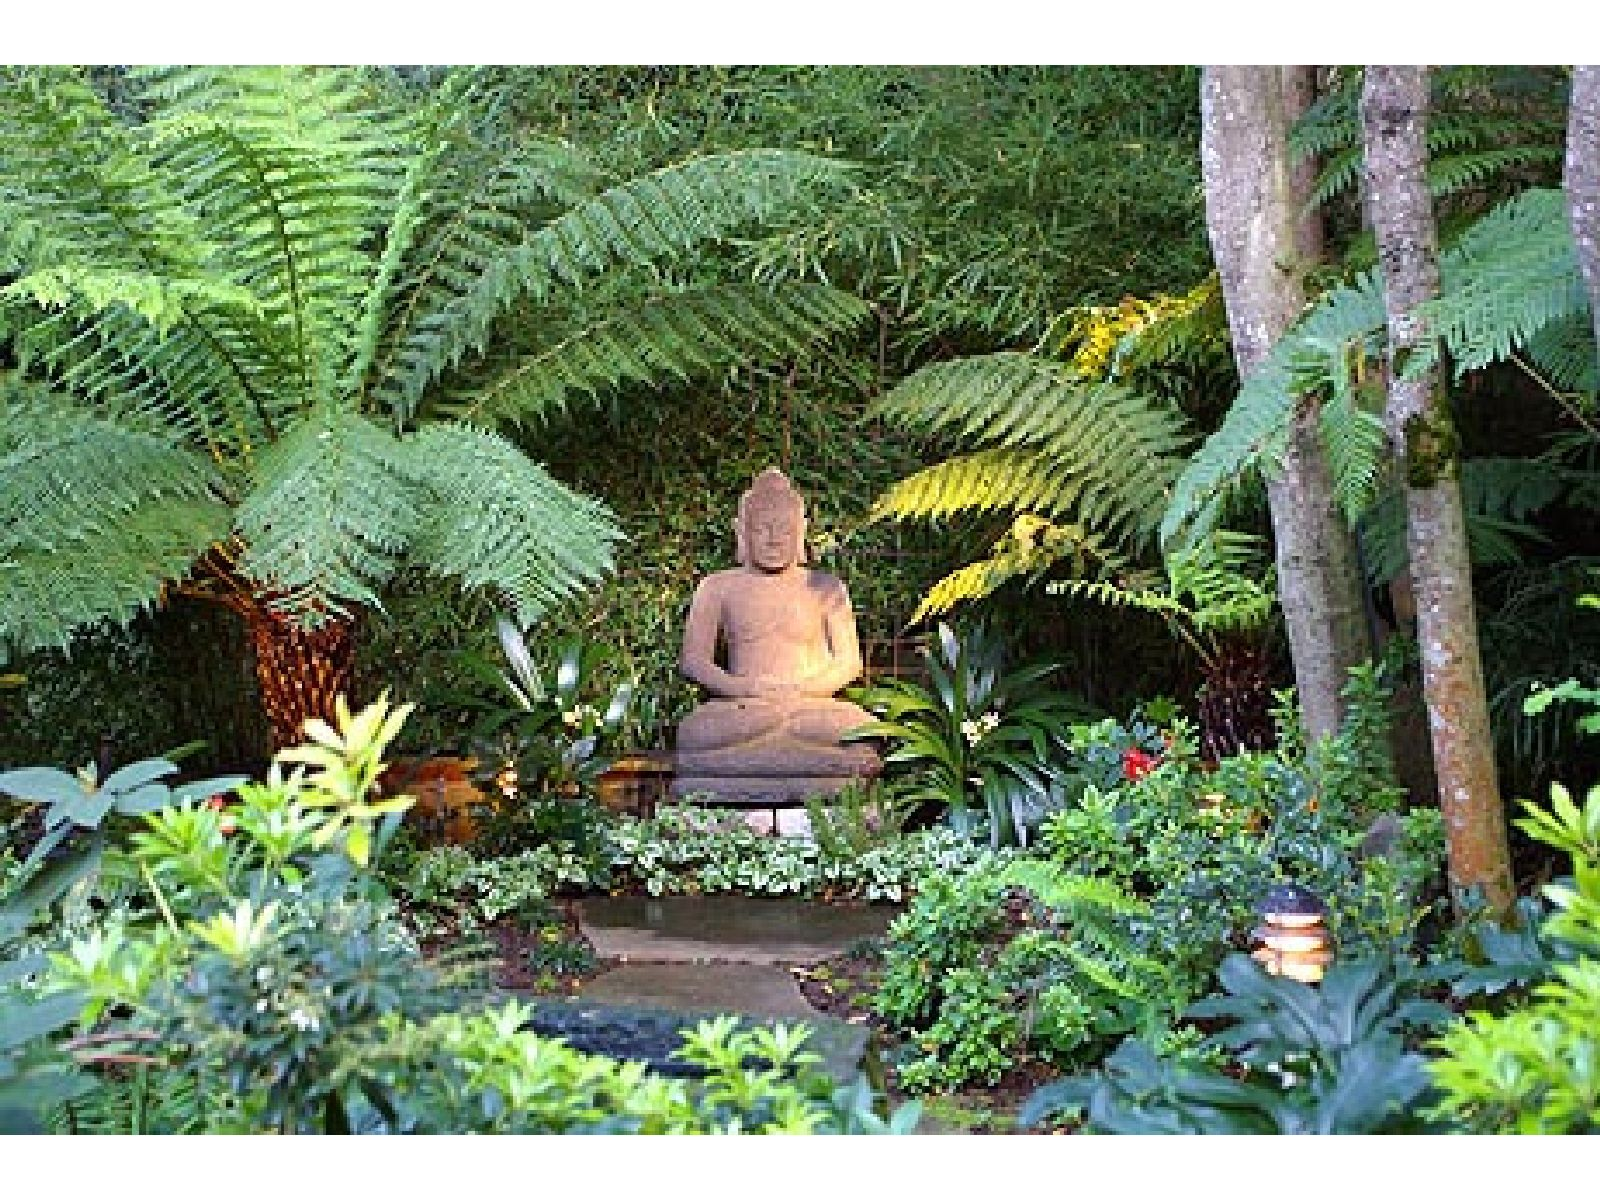 Buddha statue in garden setting landscaping garden for Garden pool zen area